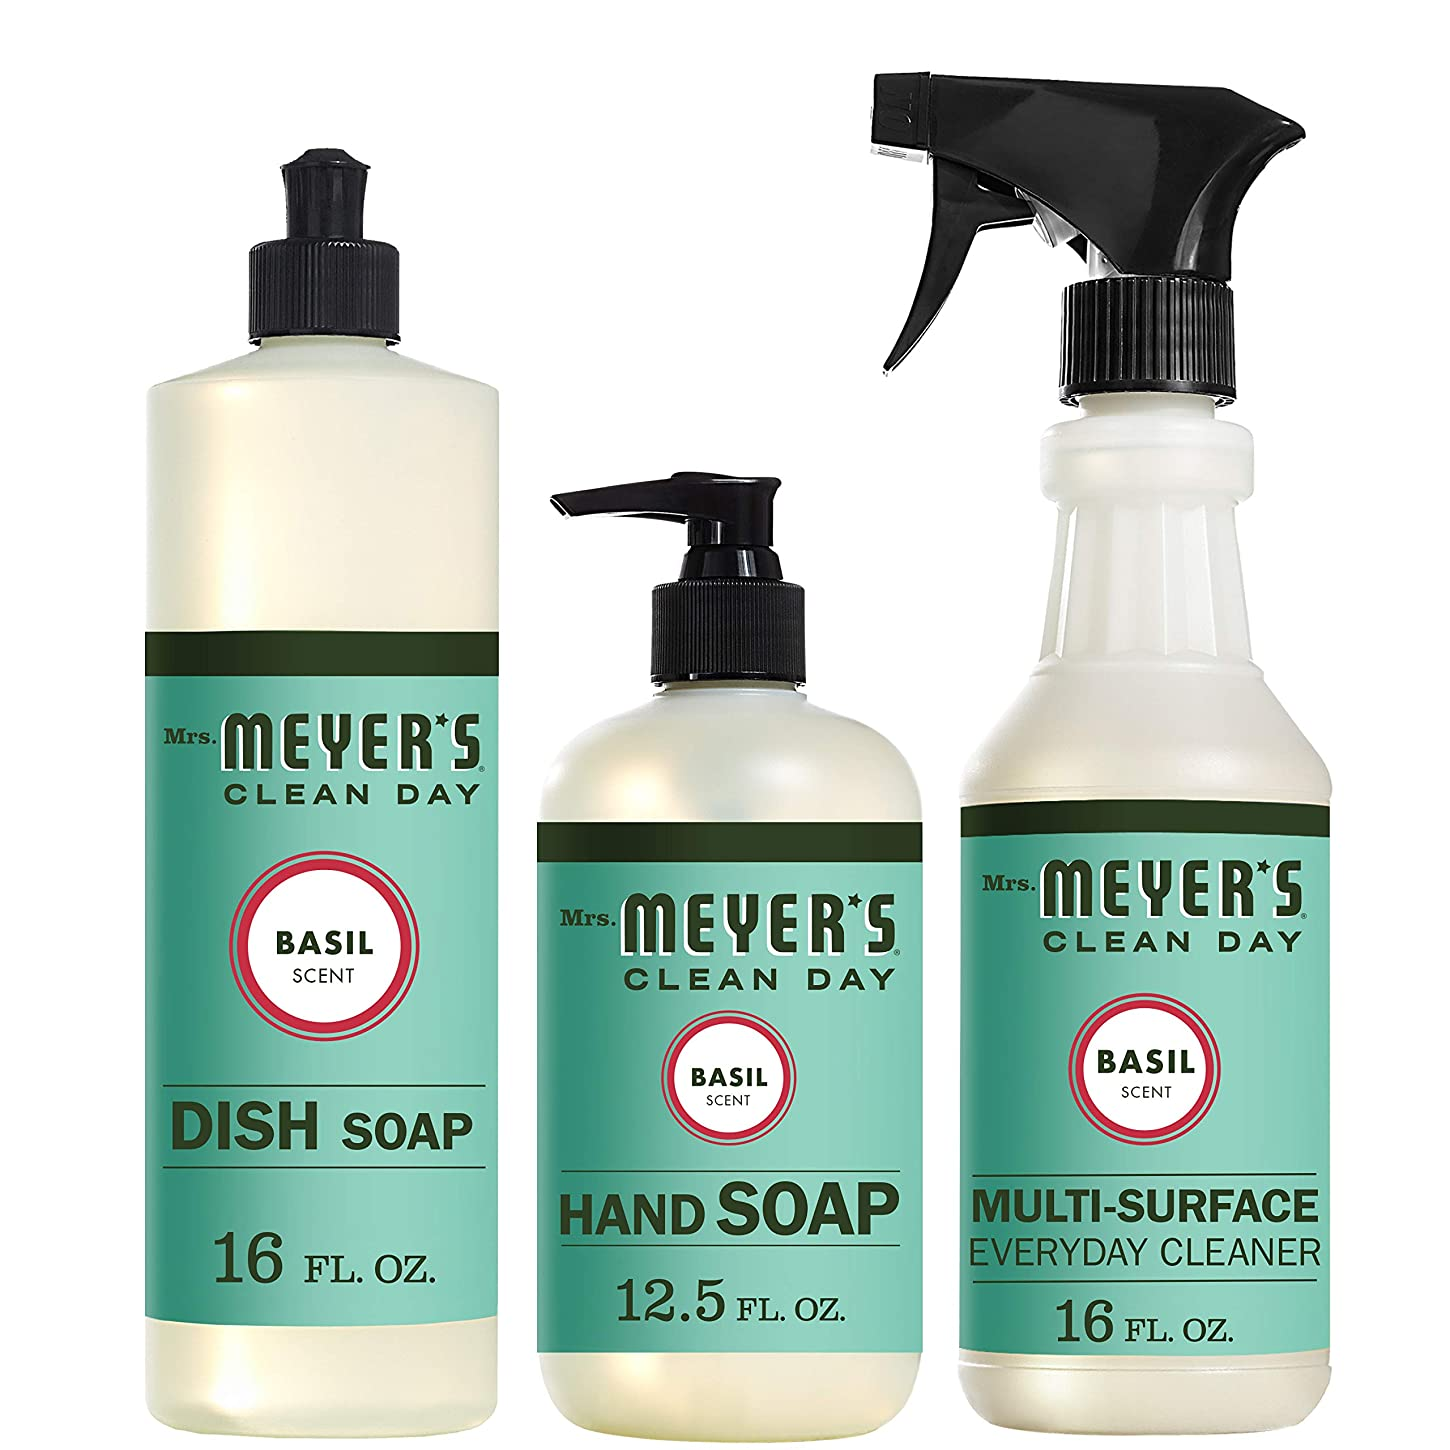 Mrs。Meyers Clean Dayキッチン基本セット、バジル、Includes : Dish Soap (16?fl oz)、Hand Soap (12.5オンス、日常Multi - Surface Cleaner (16?fl oz)